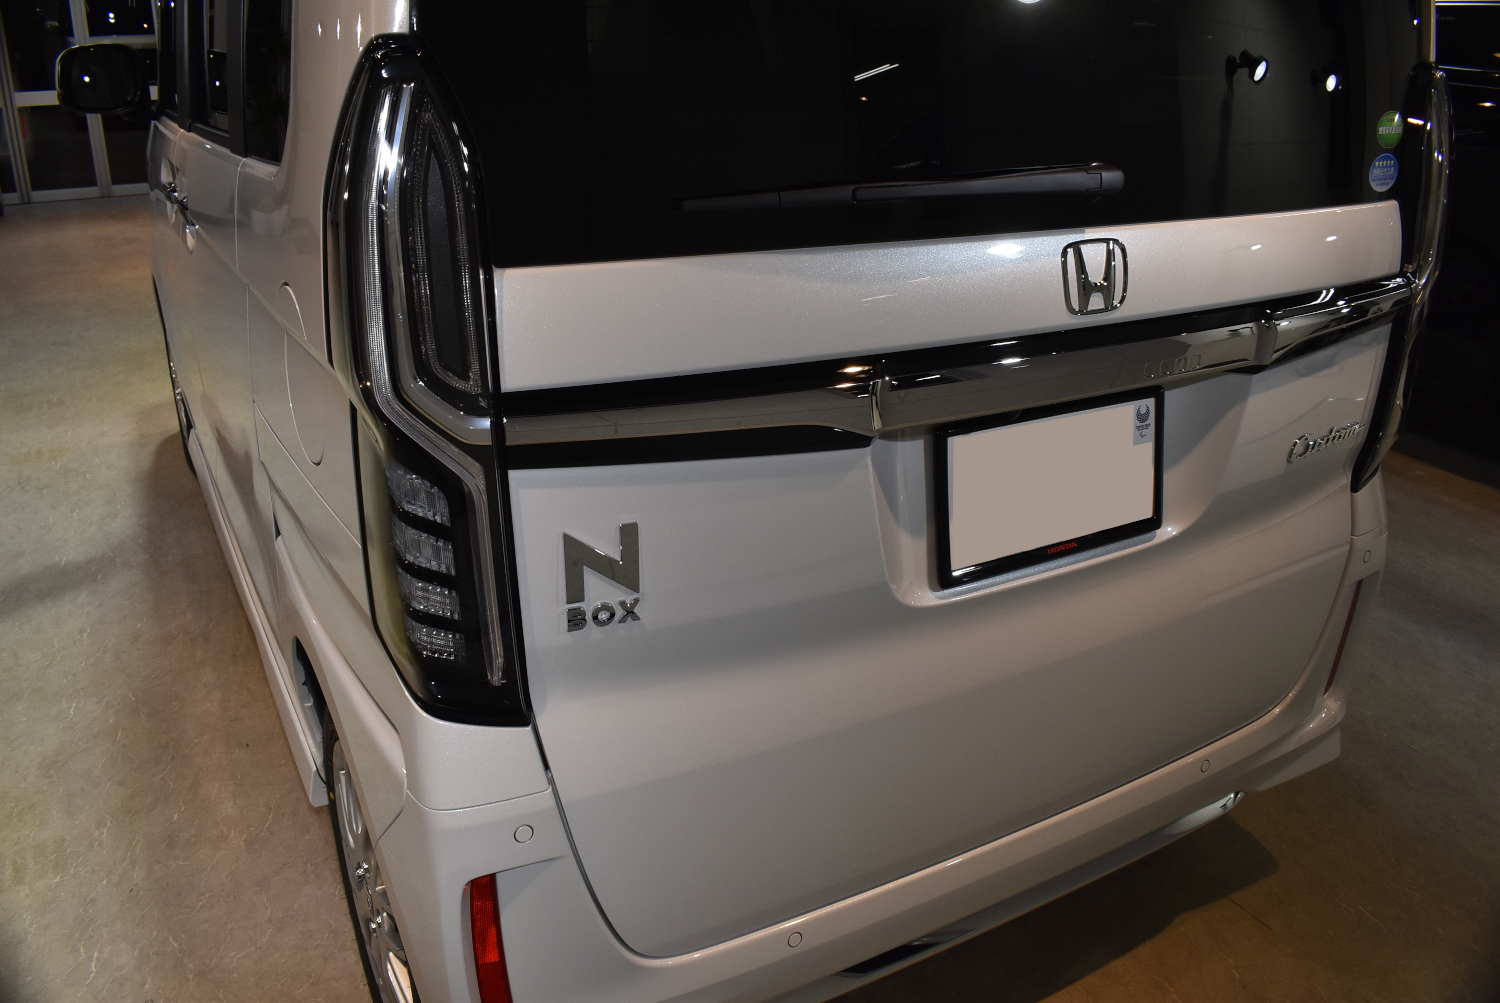 20210326n-boxafter05